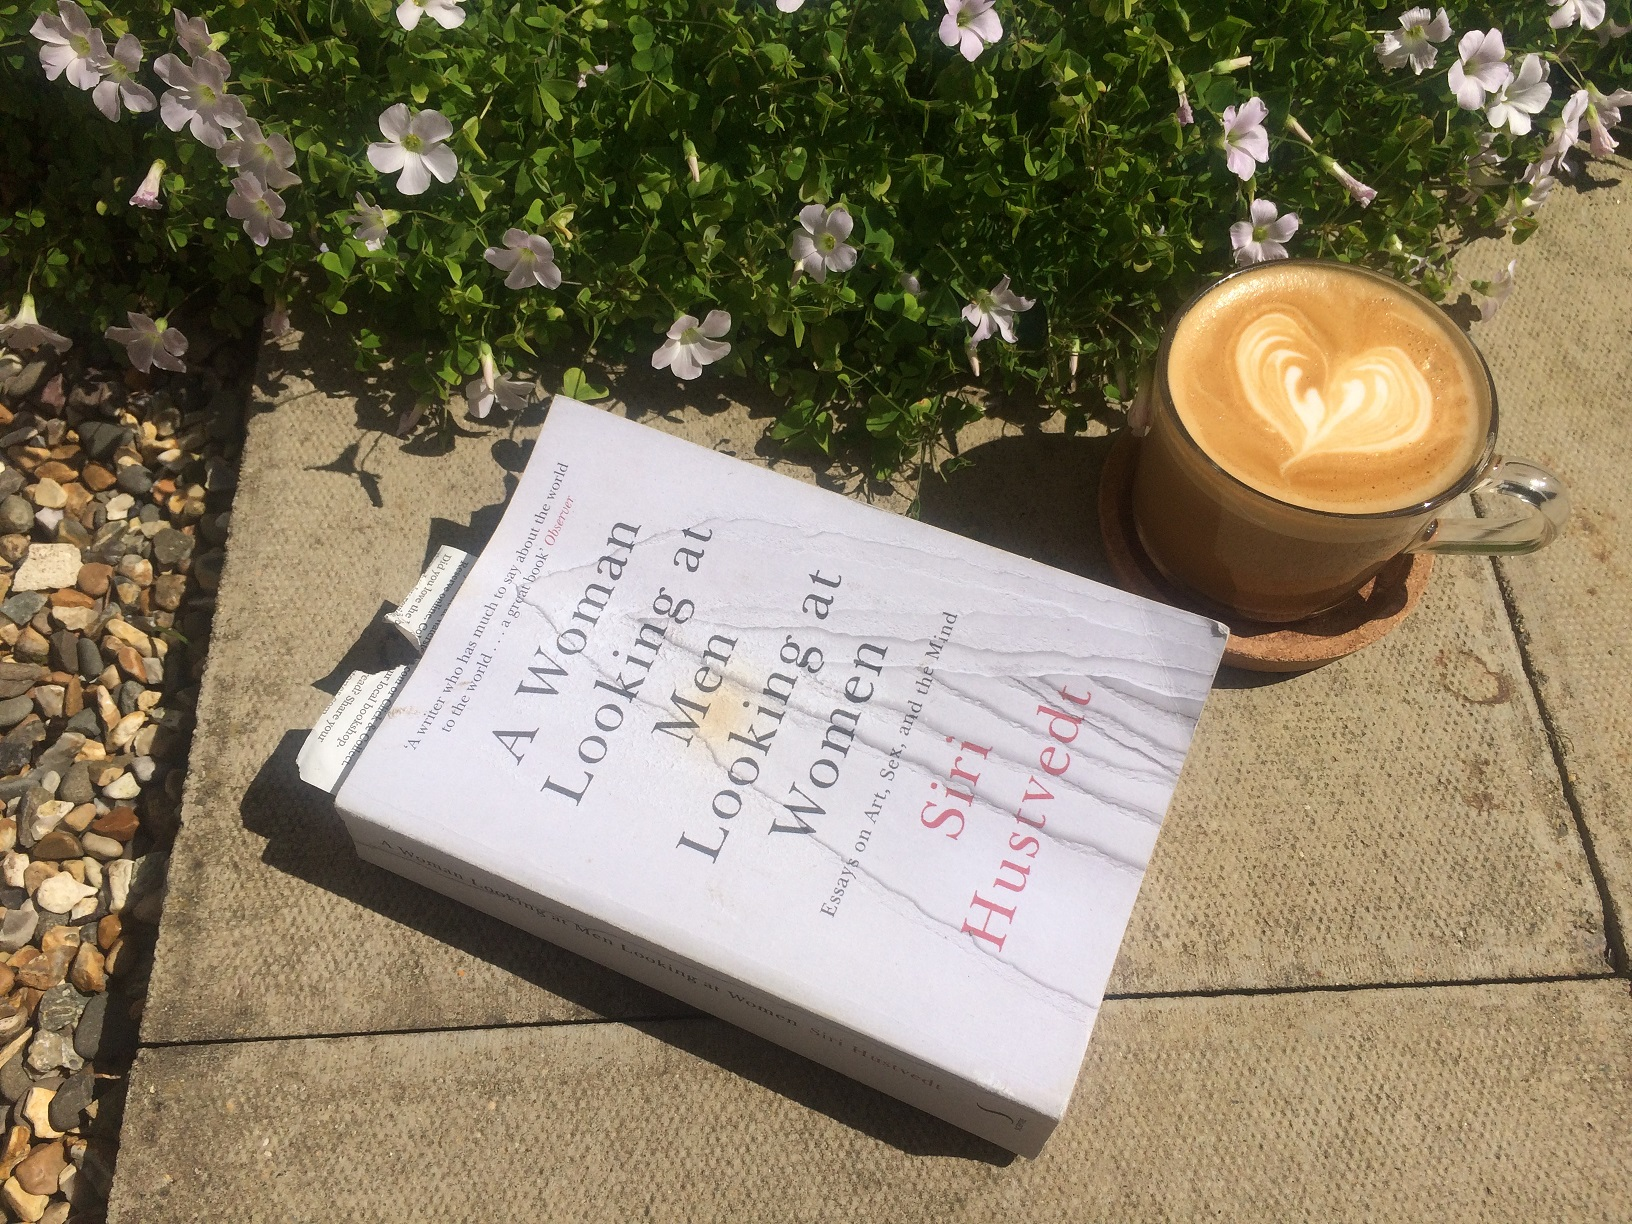 A photograph of the book 'Women LOoking at Men' by author Siri Hustvedt on a garden paving stone with a coffee and some plants.